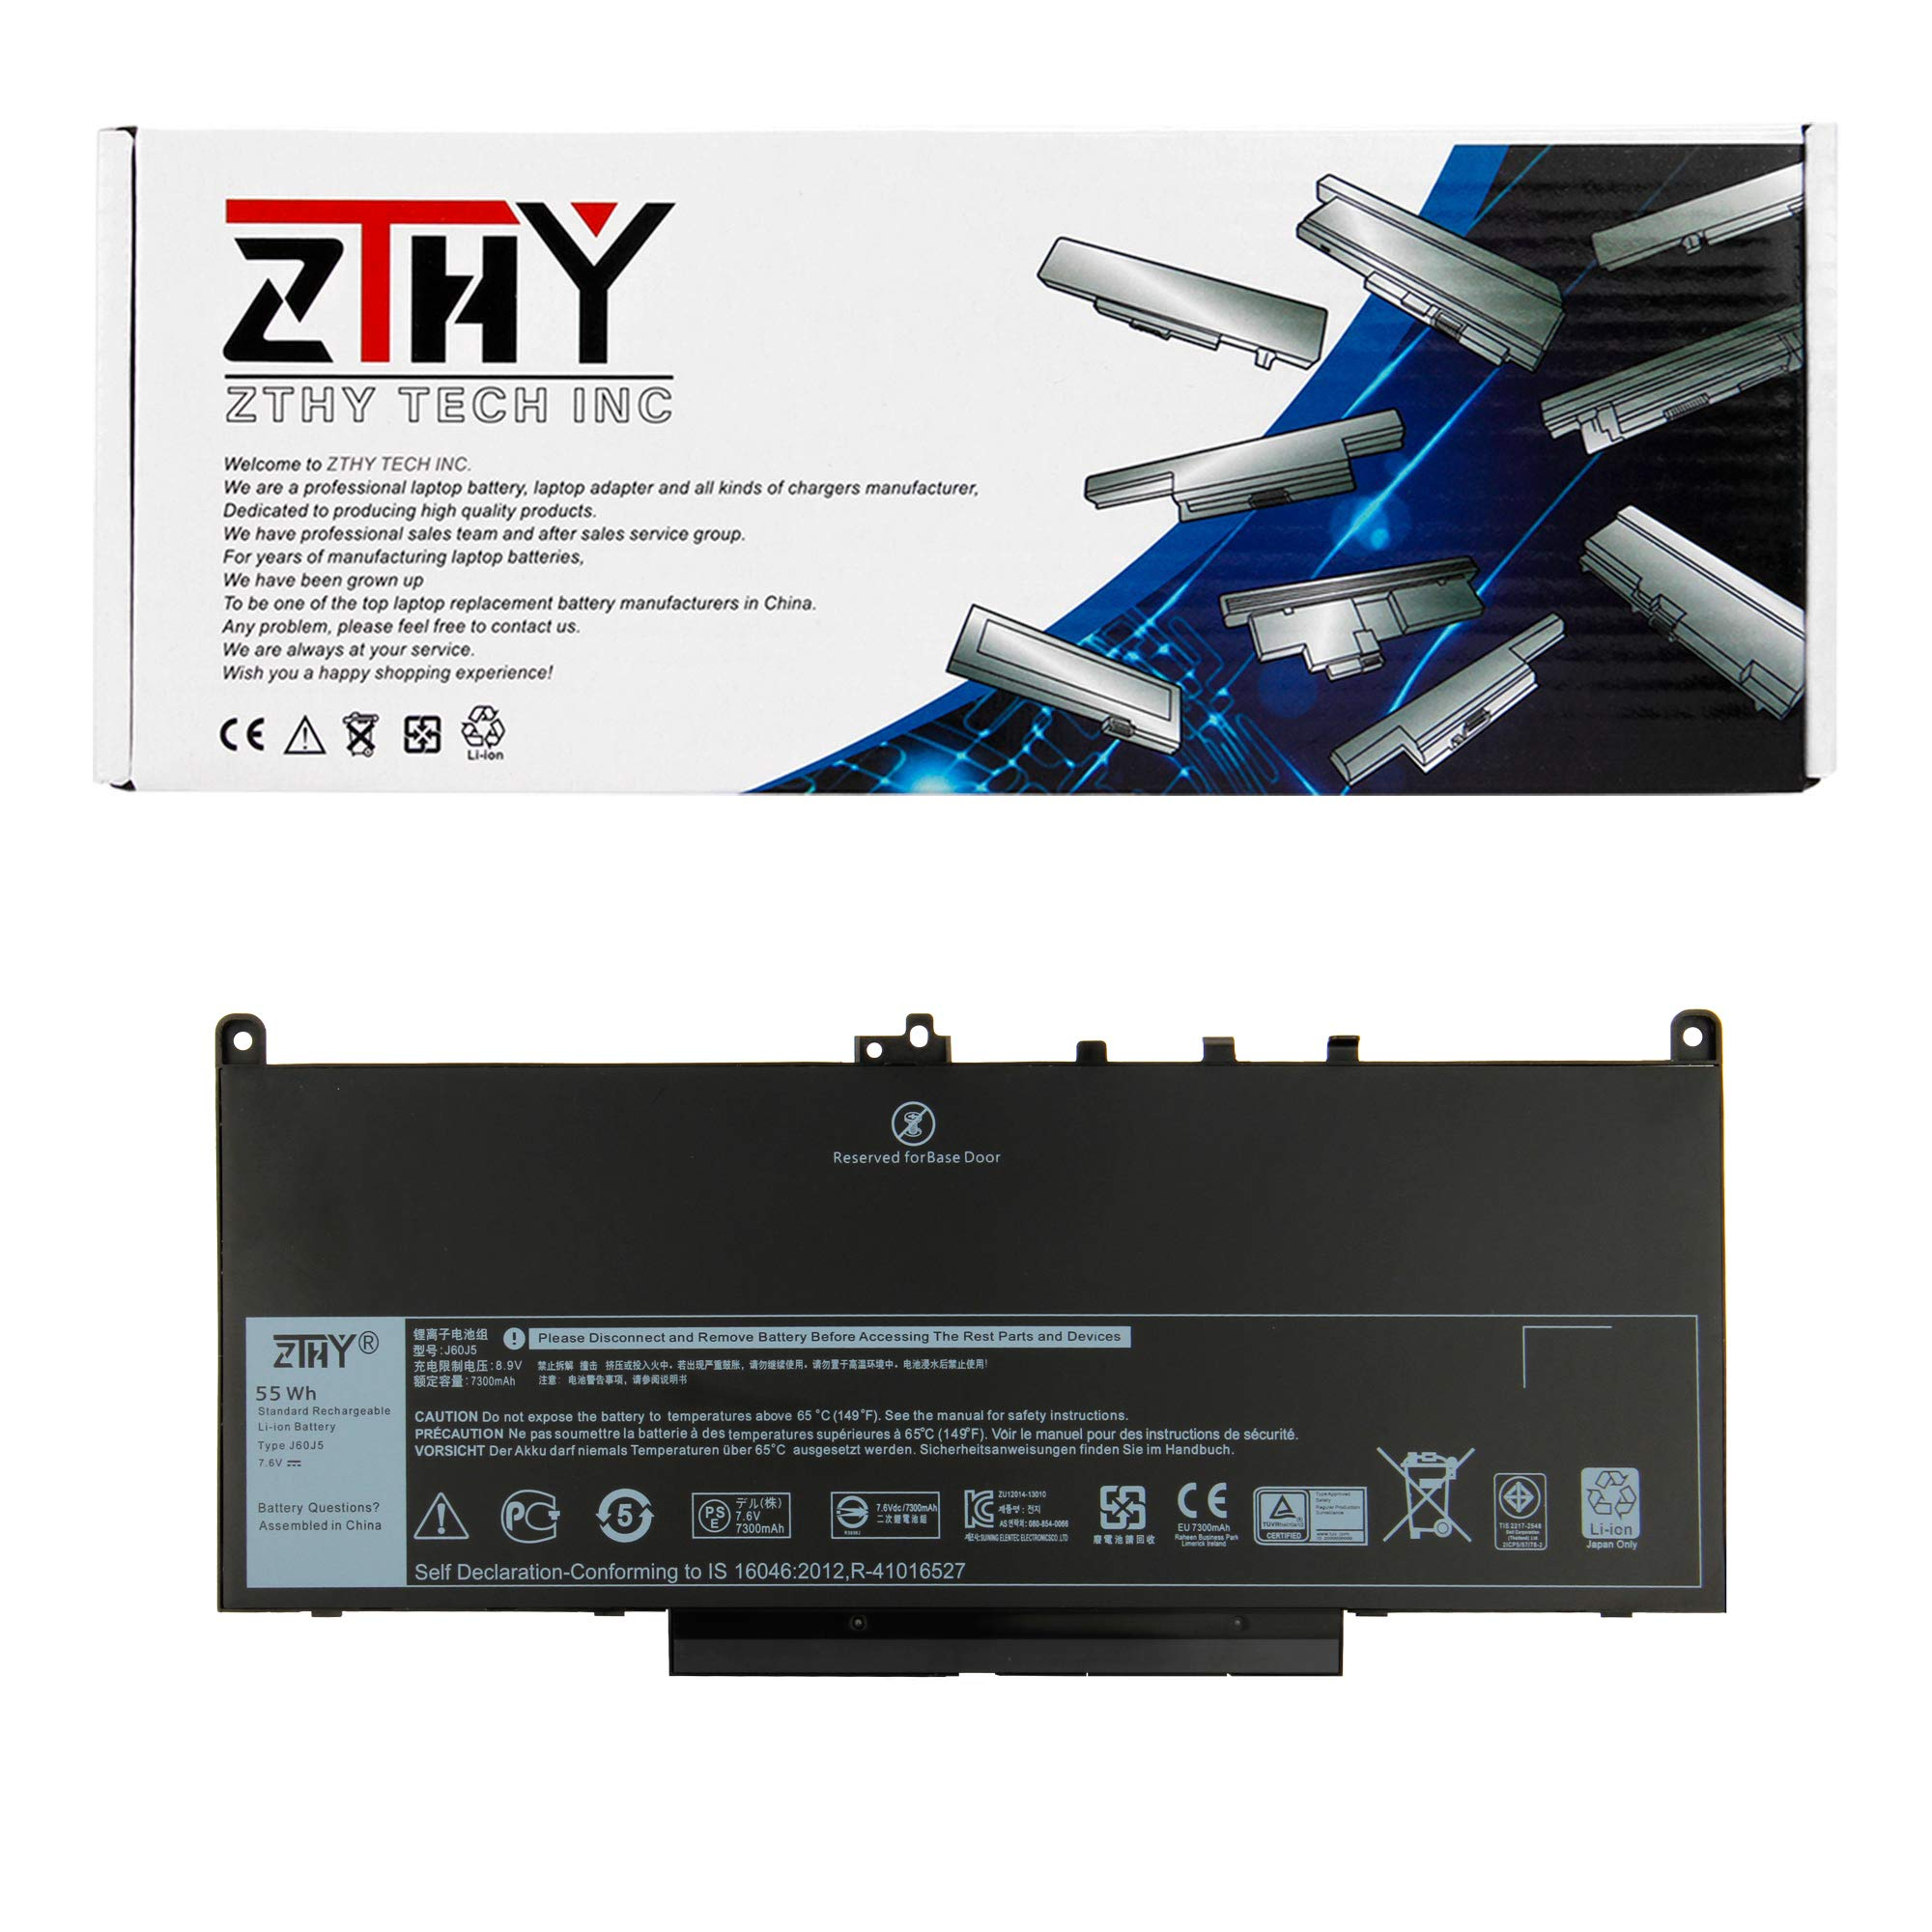 ZTHY J60J5 Laptop Battery Replacement for Dell Latitude E7270 E7470 Series Notebook R1V85 451-BBSX 451-BBSY 451-BBSU MC34Y 242WD PDNM2 7.6V 55WH by ZTHY (Image #1)